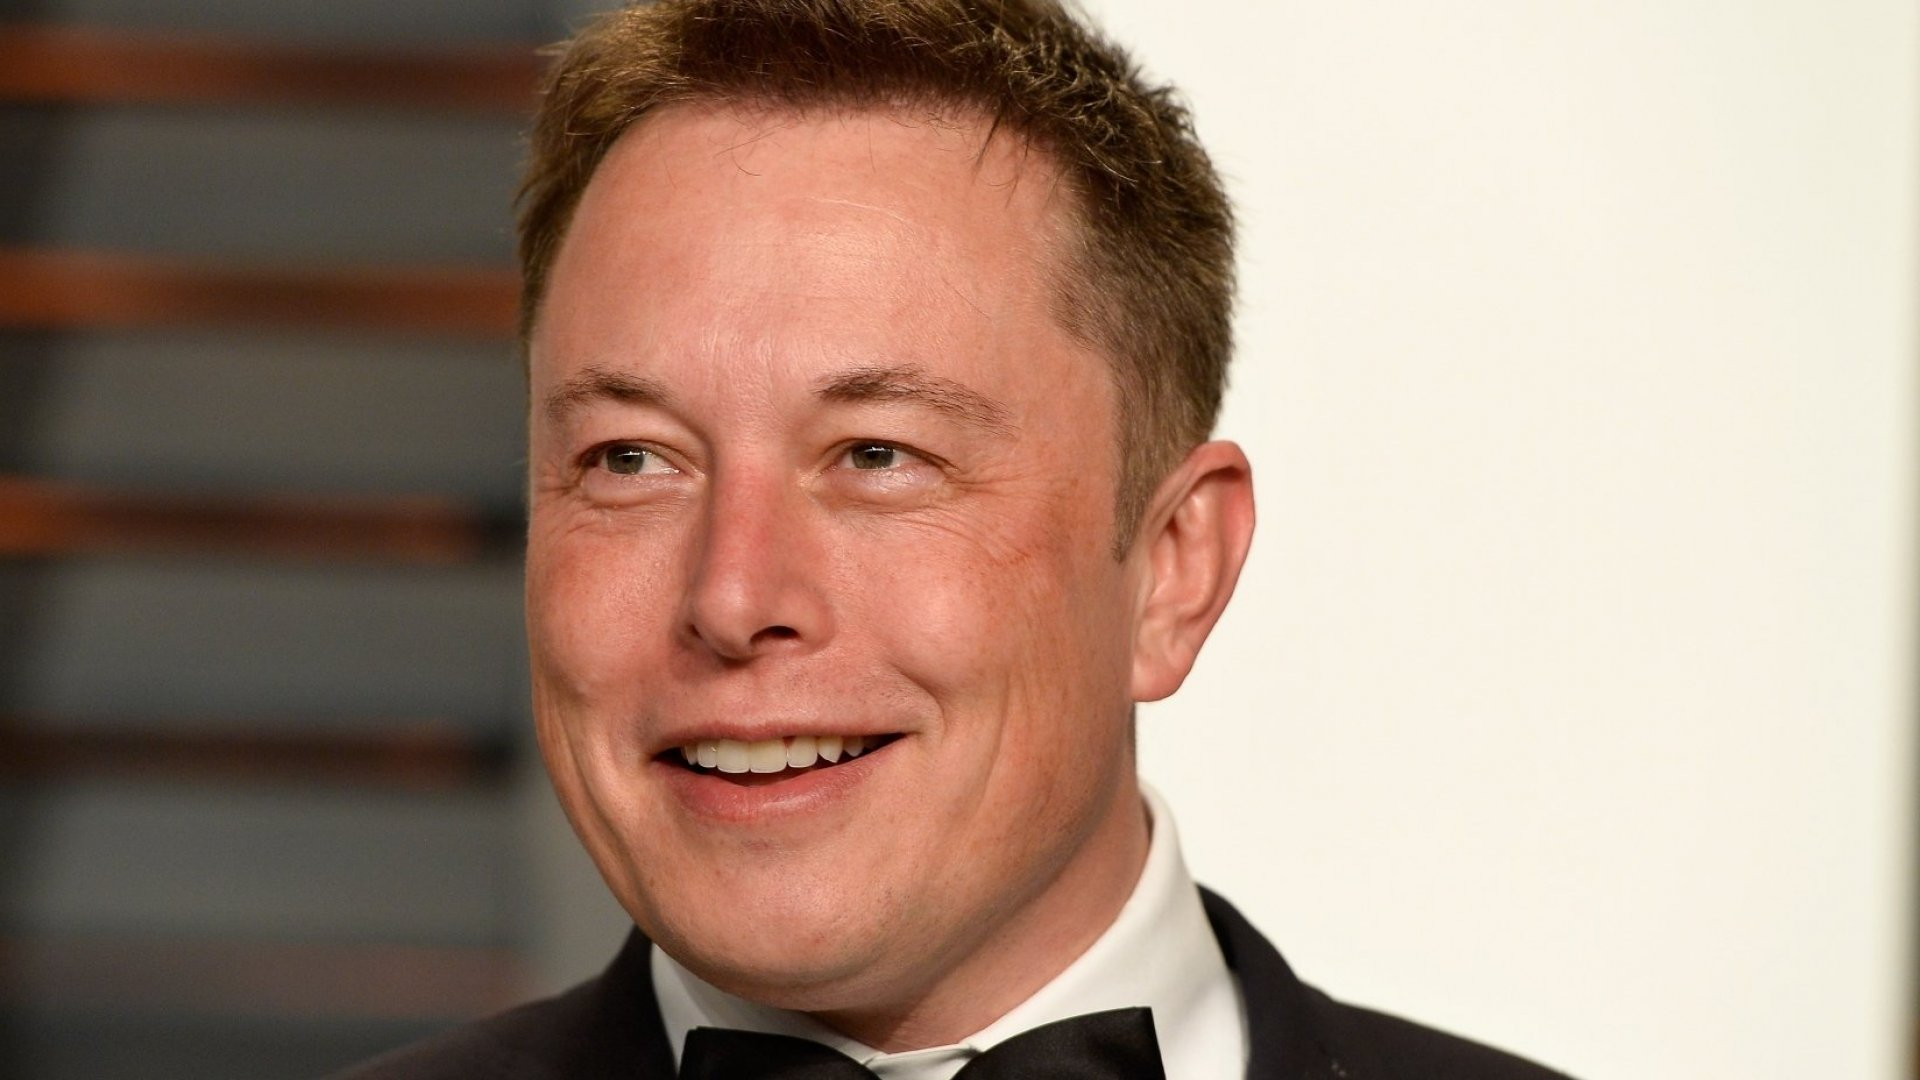 Elon Musk Meets With Donald Trump at the White House